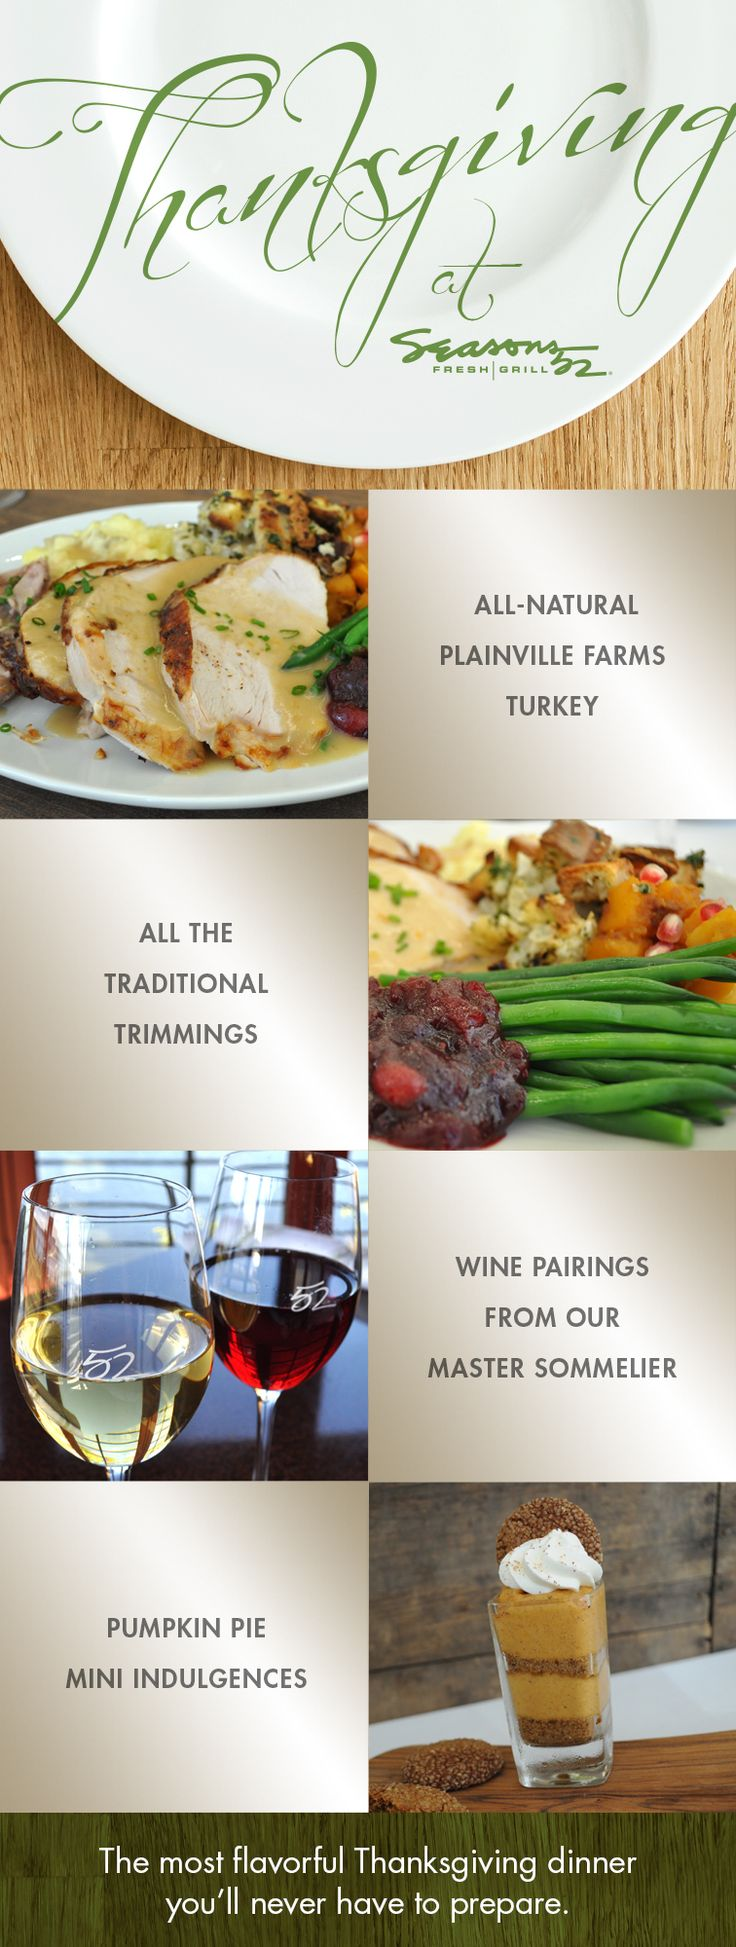 Book your reservation at Seasons 52 today!  Join us for a traditional Thanksgiving dinner with all the trimmings including wine pairings and seasonal cocktails. See our holiday menu and reserve a table.